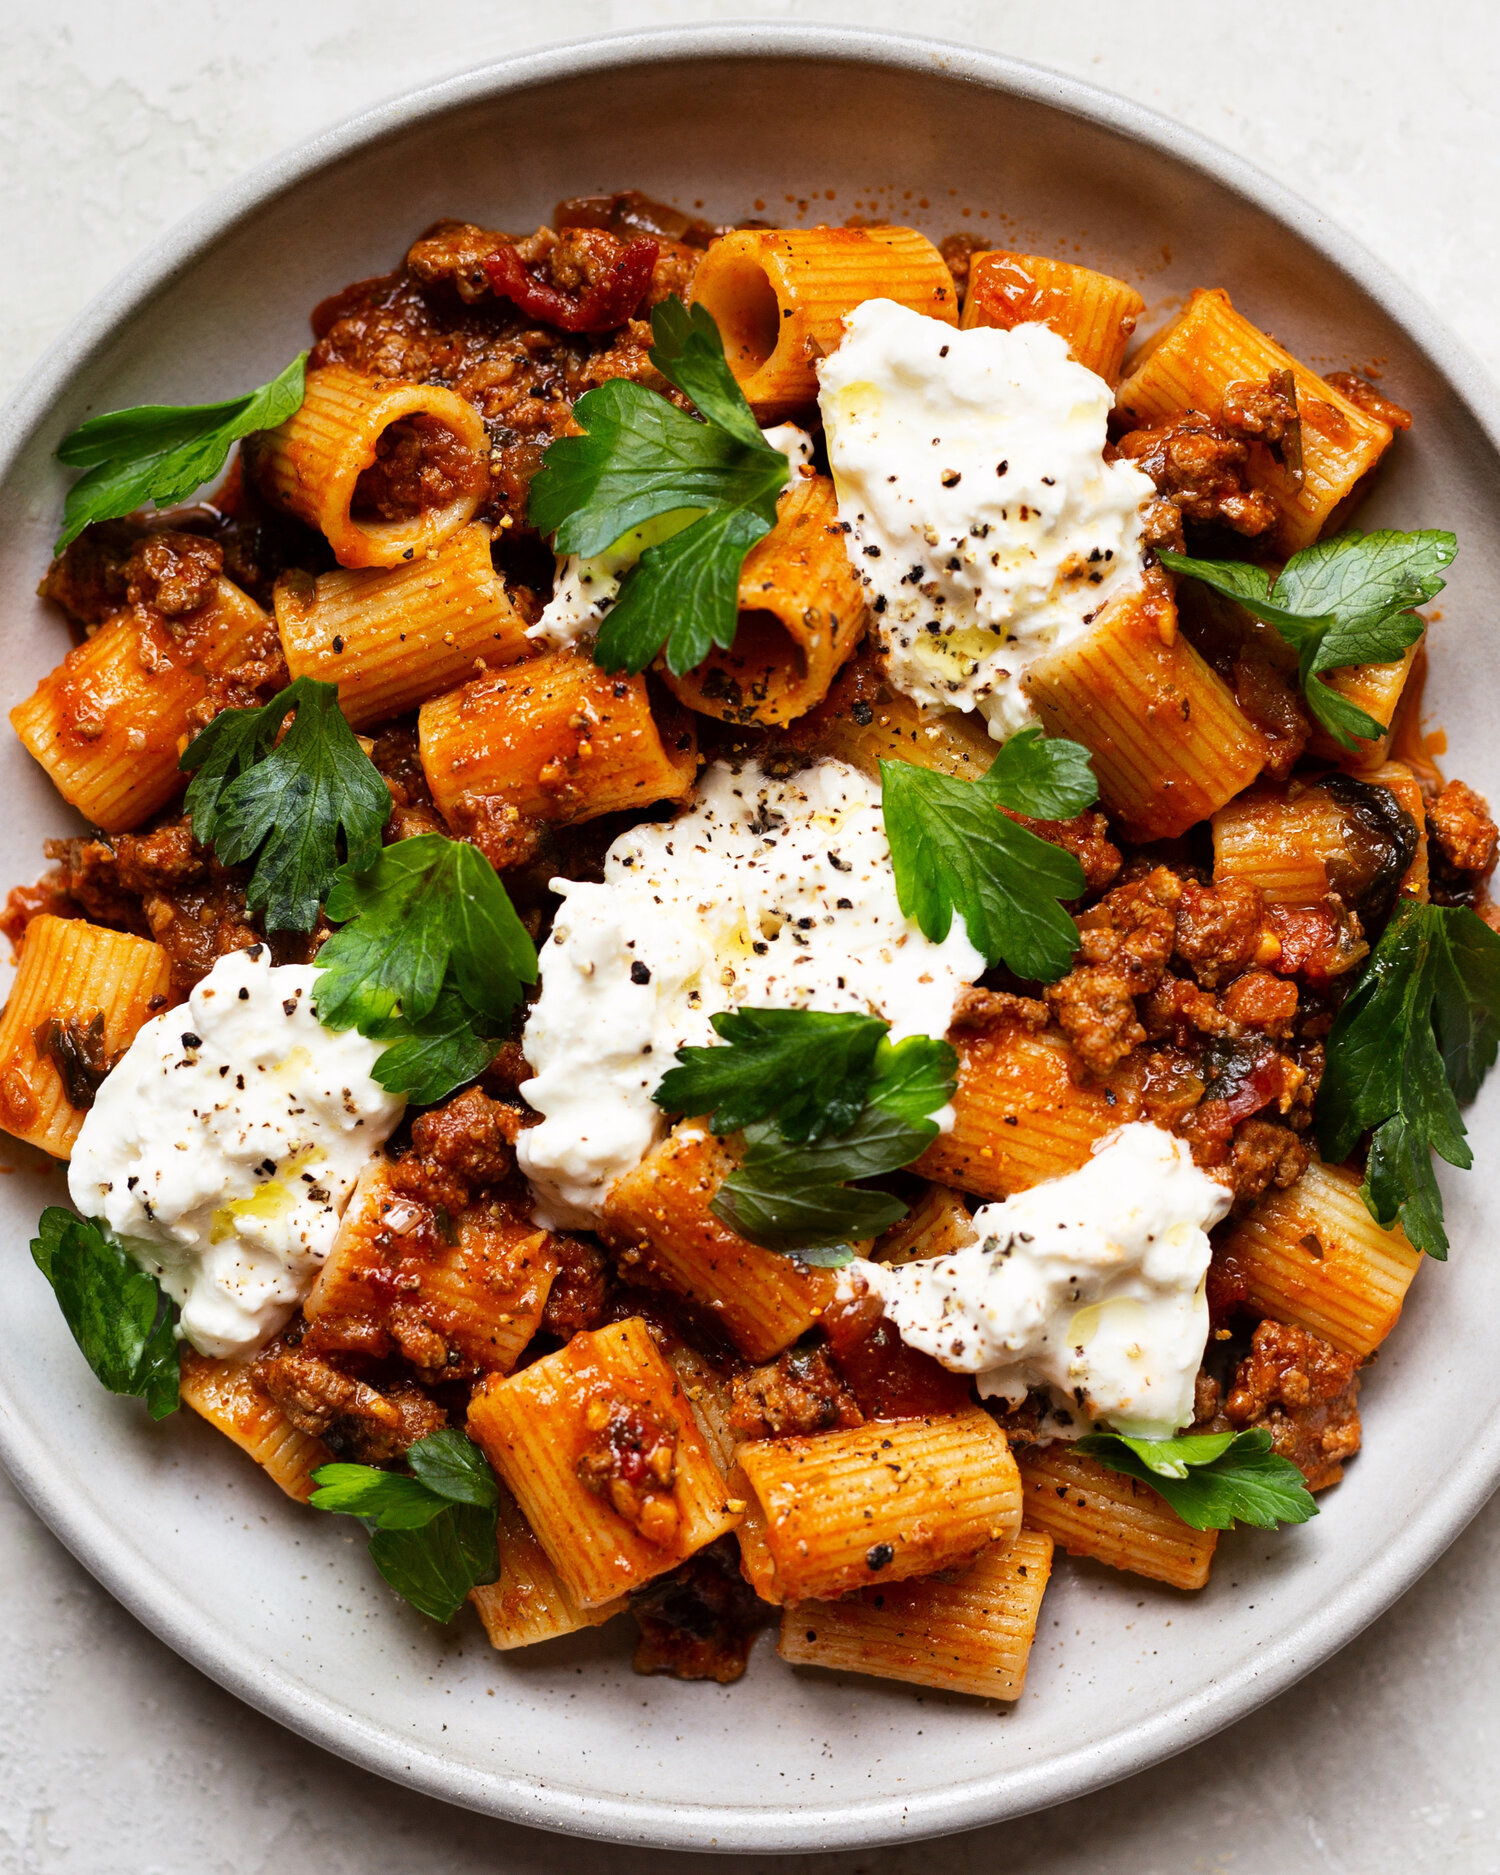 A big plate of rigatoni with burrata, meat sauce, and herbs.